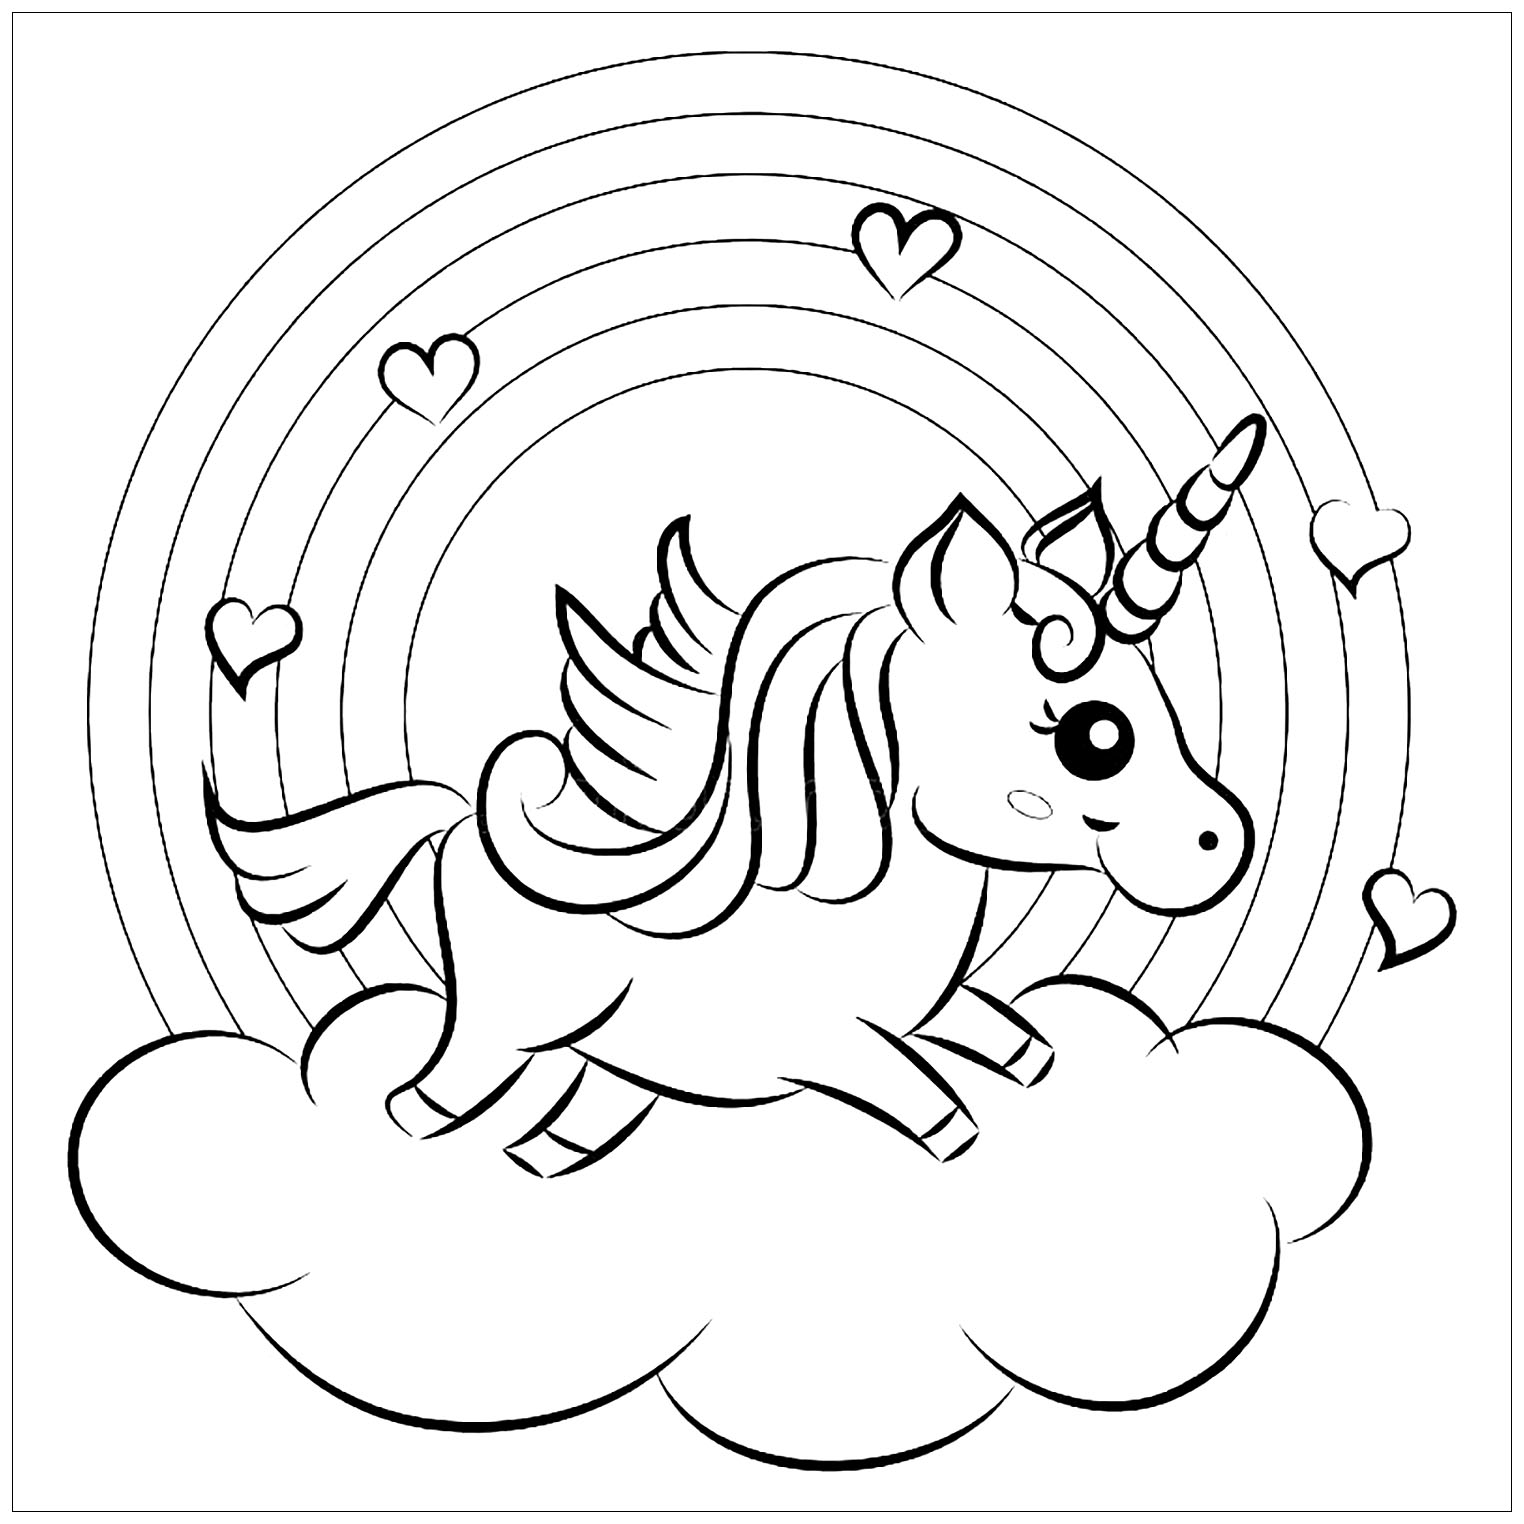 Unicorns free to color for kids - Unicorns Kids Coloring Pages